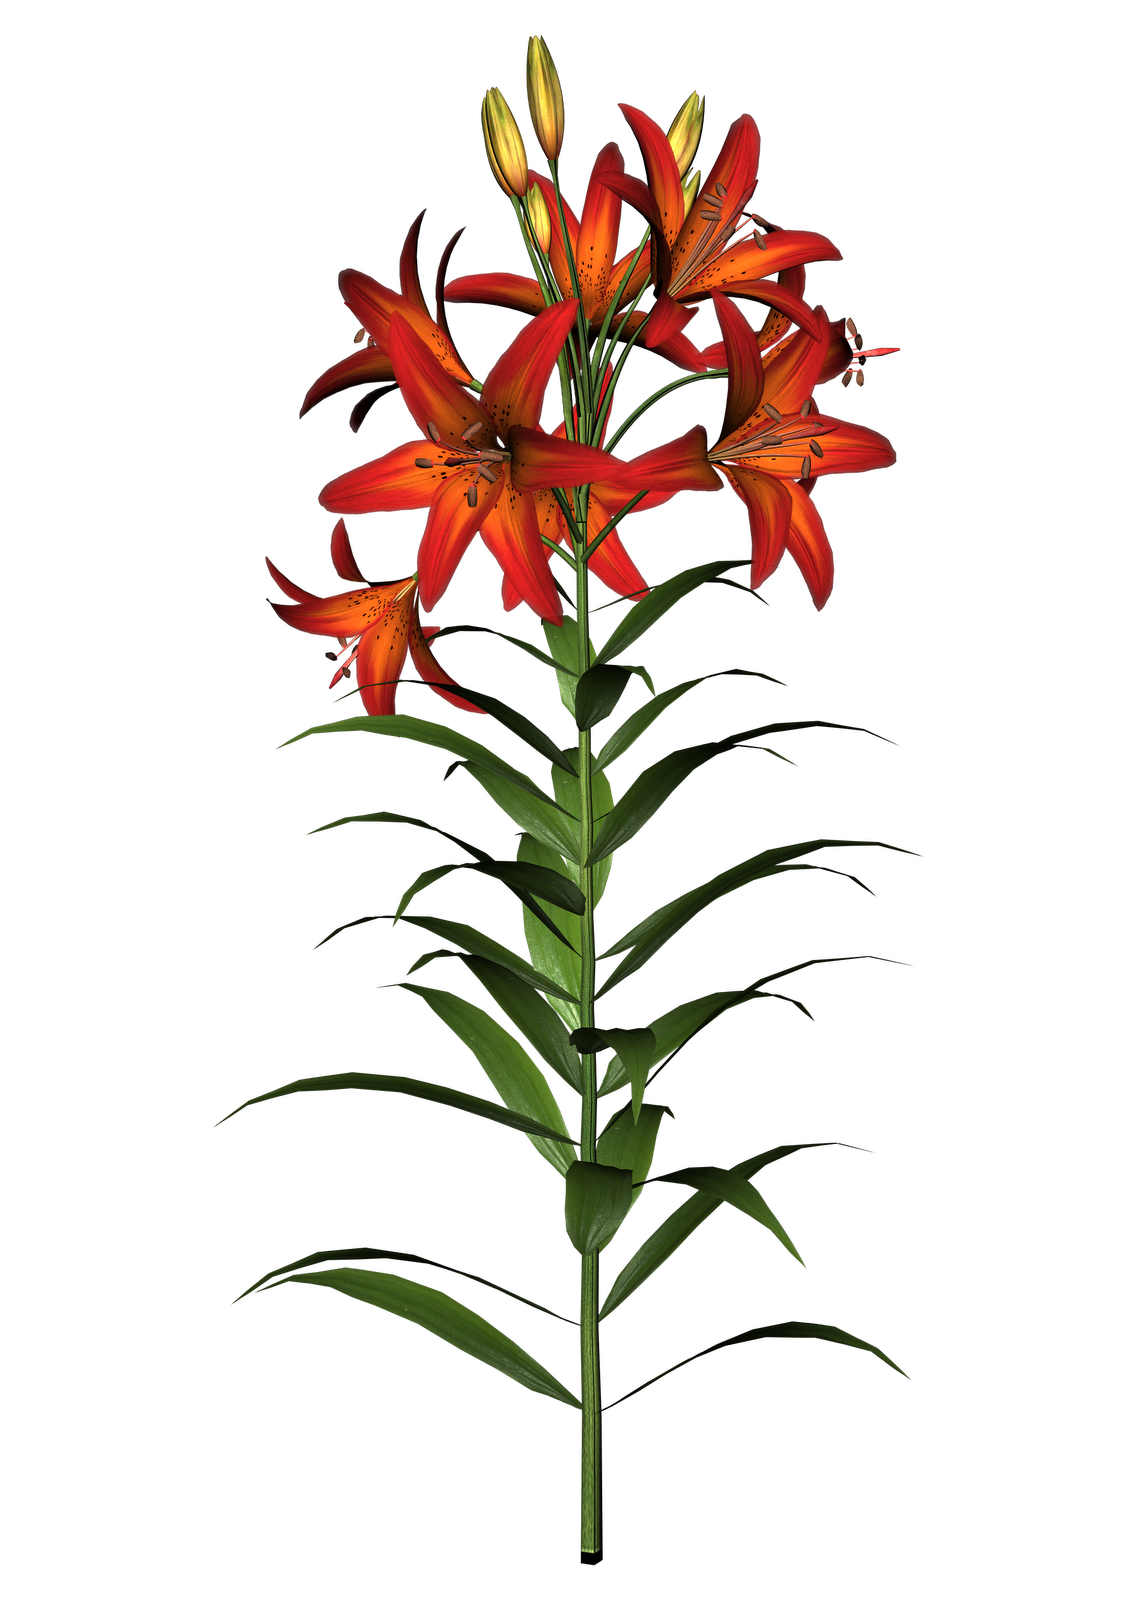 Lily flowers clipart at getdrawings free for personal use lily 1132x1600 easter lily clipart izmirmasajfo